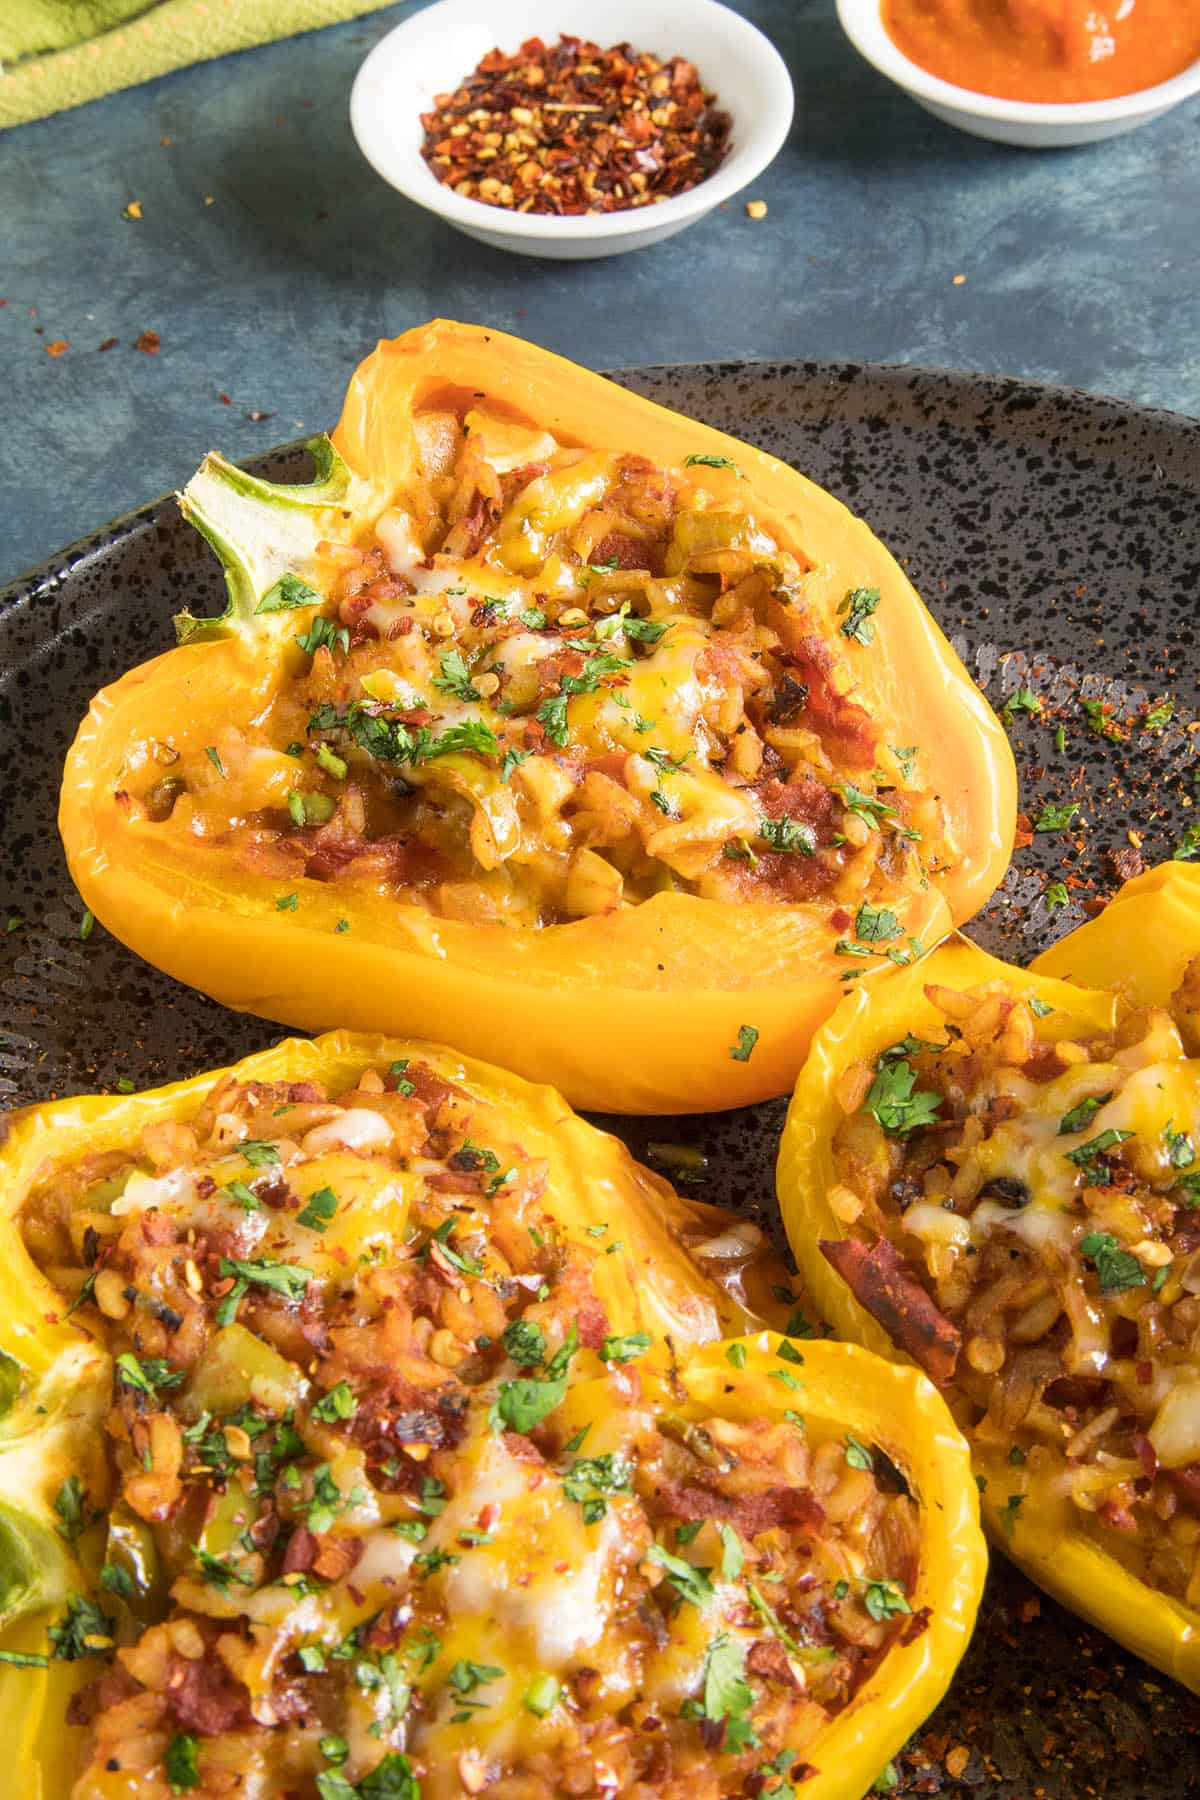 Delicious Spicy Vegetarian Stuffed Peppers, ready for you to dig in.